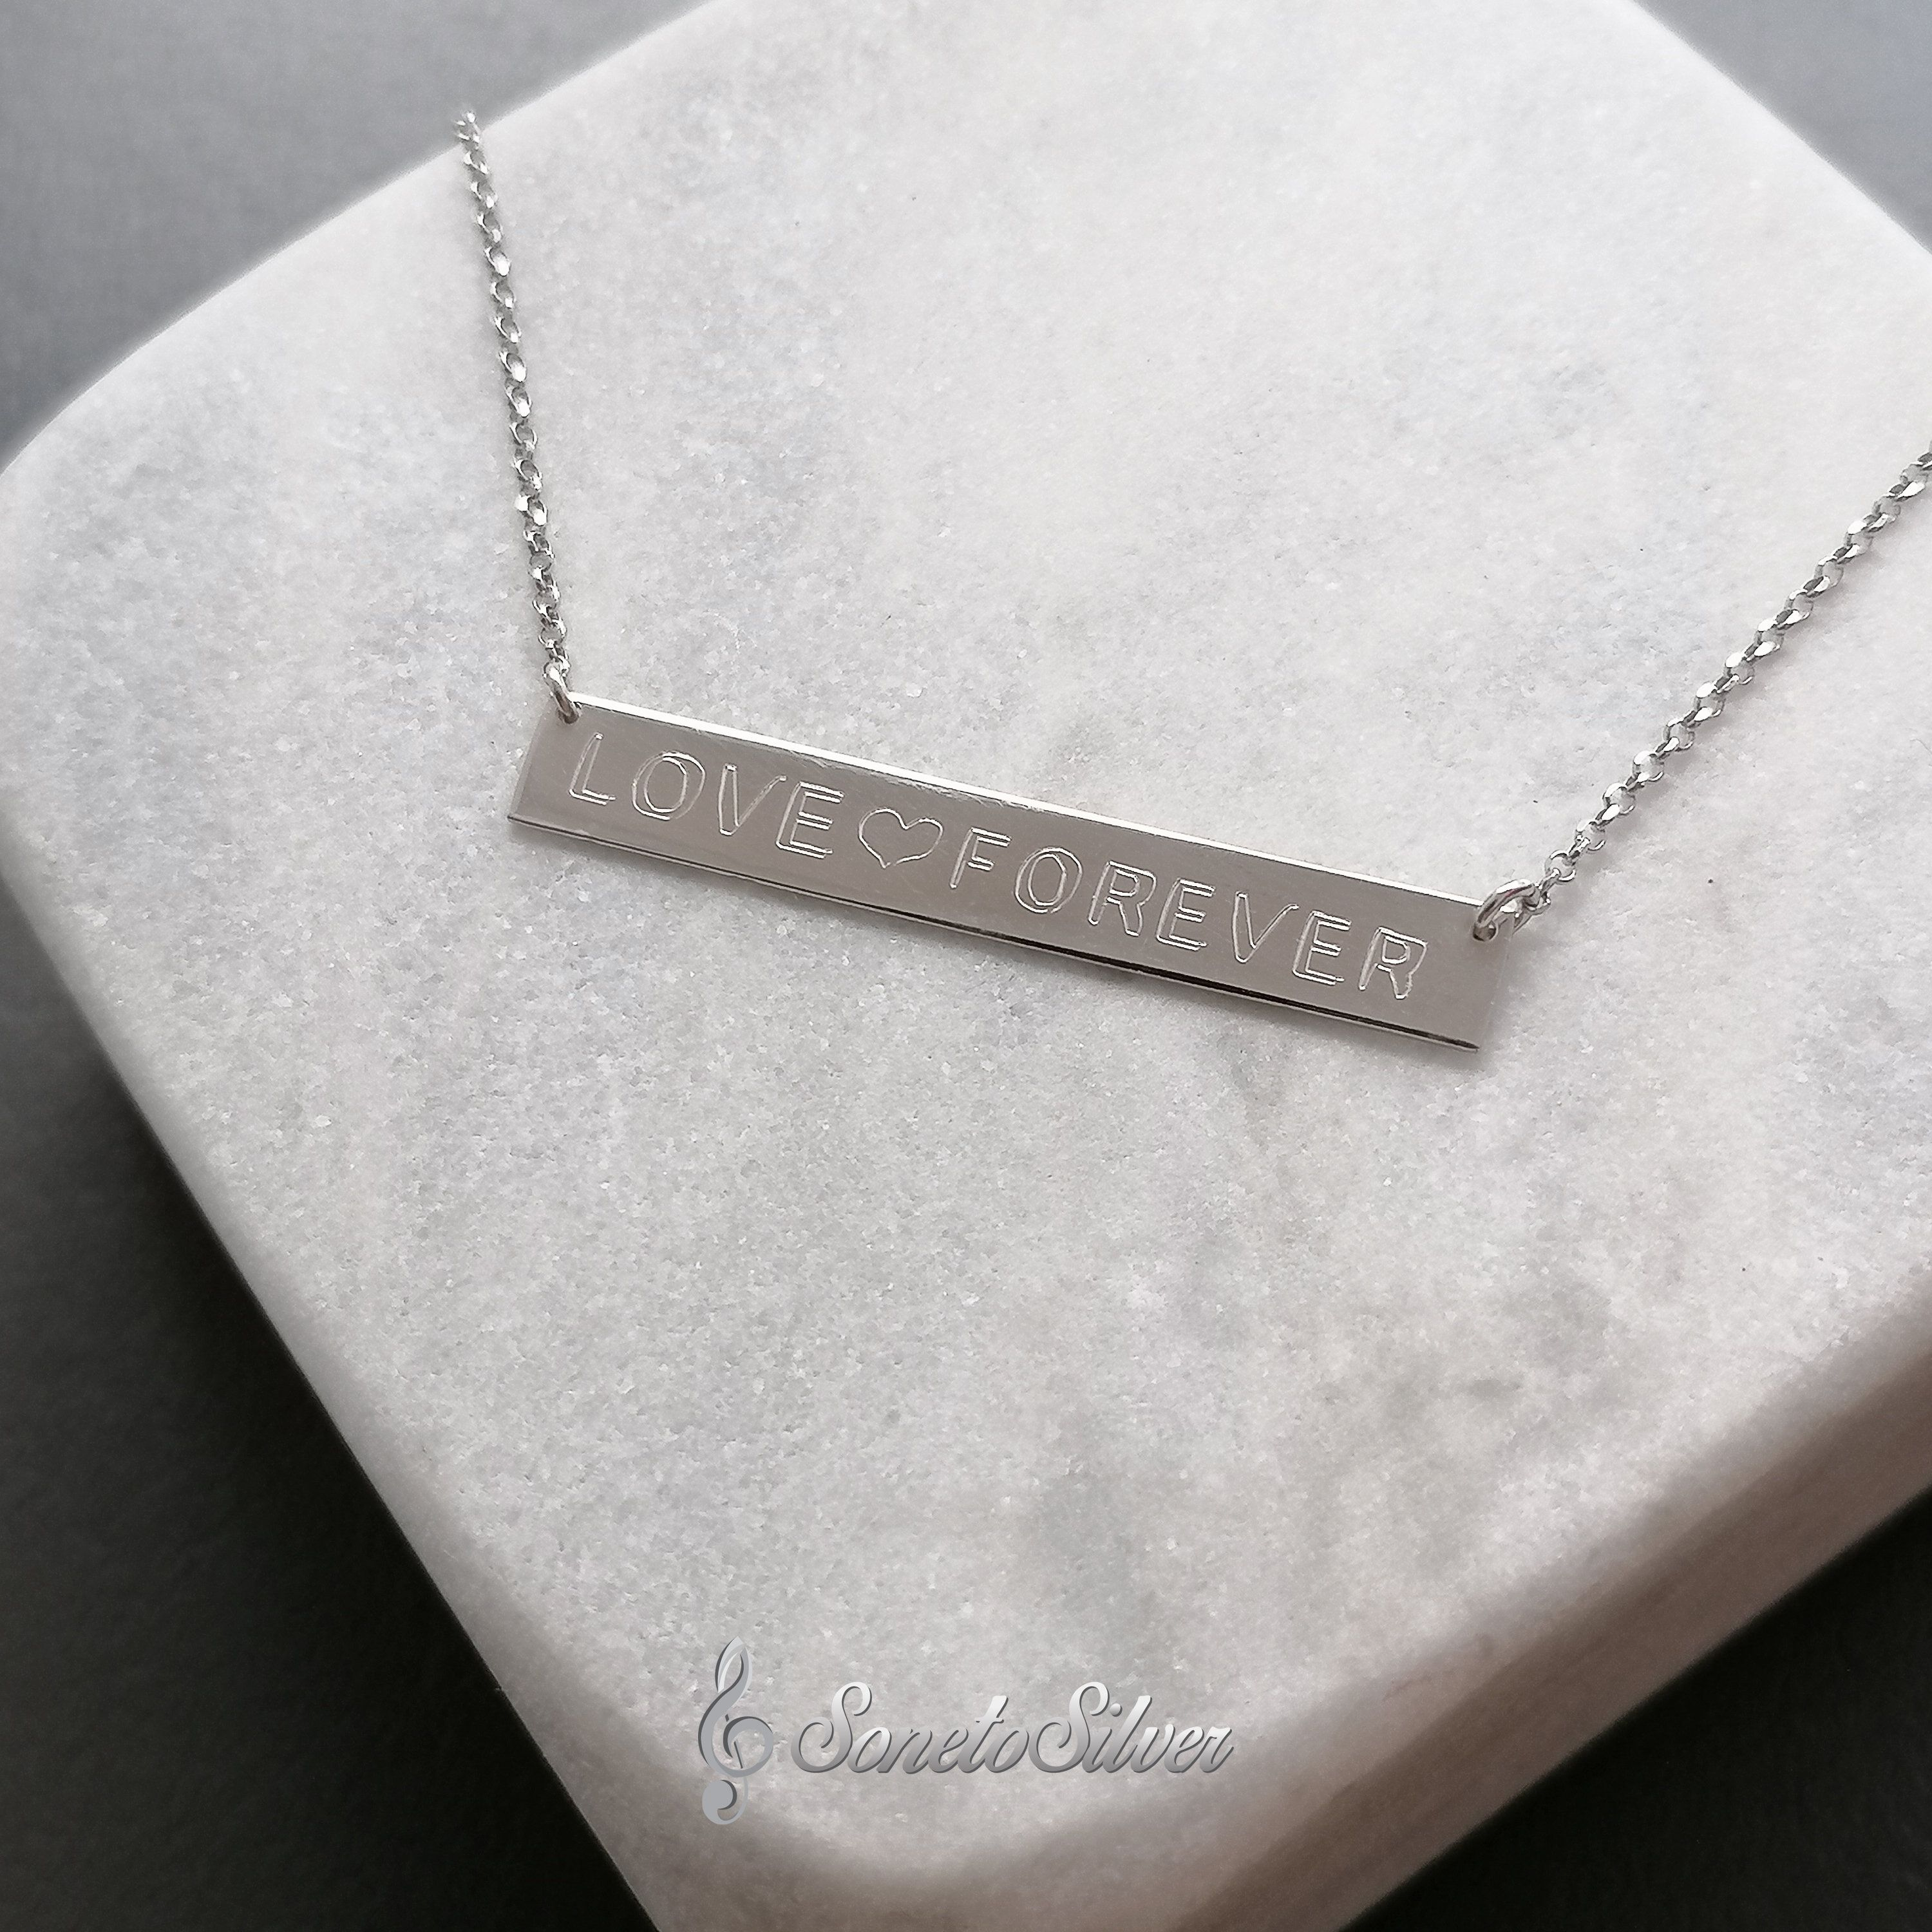 Personalized Bar Nameplate Necklace, Custom Name Necklace Silver Sterling Gold plated Rose Yellow White, Dainty Necklaces for her